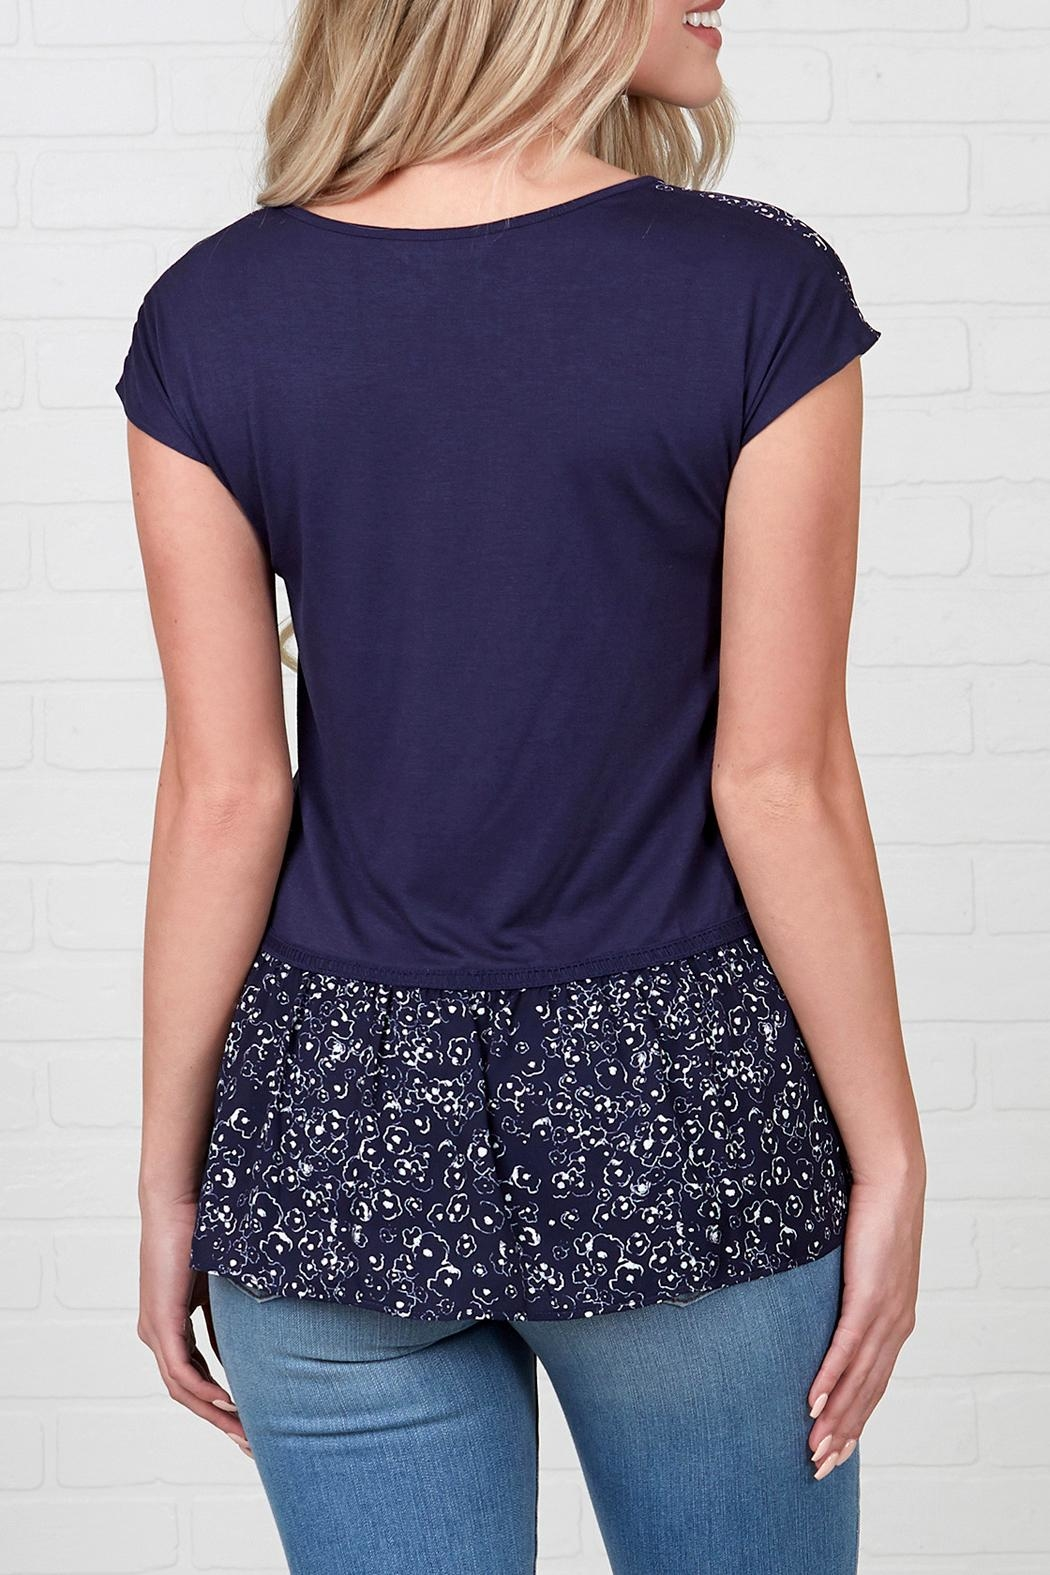 Downeast Basics Rag Time Top - Front Full Image